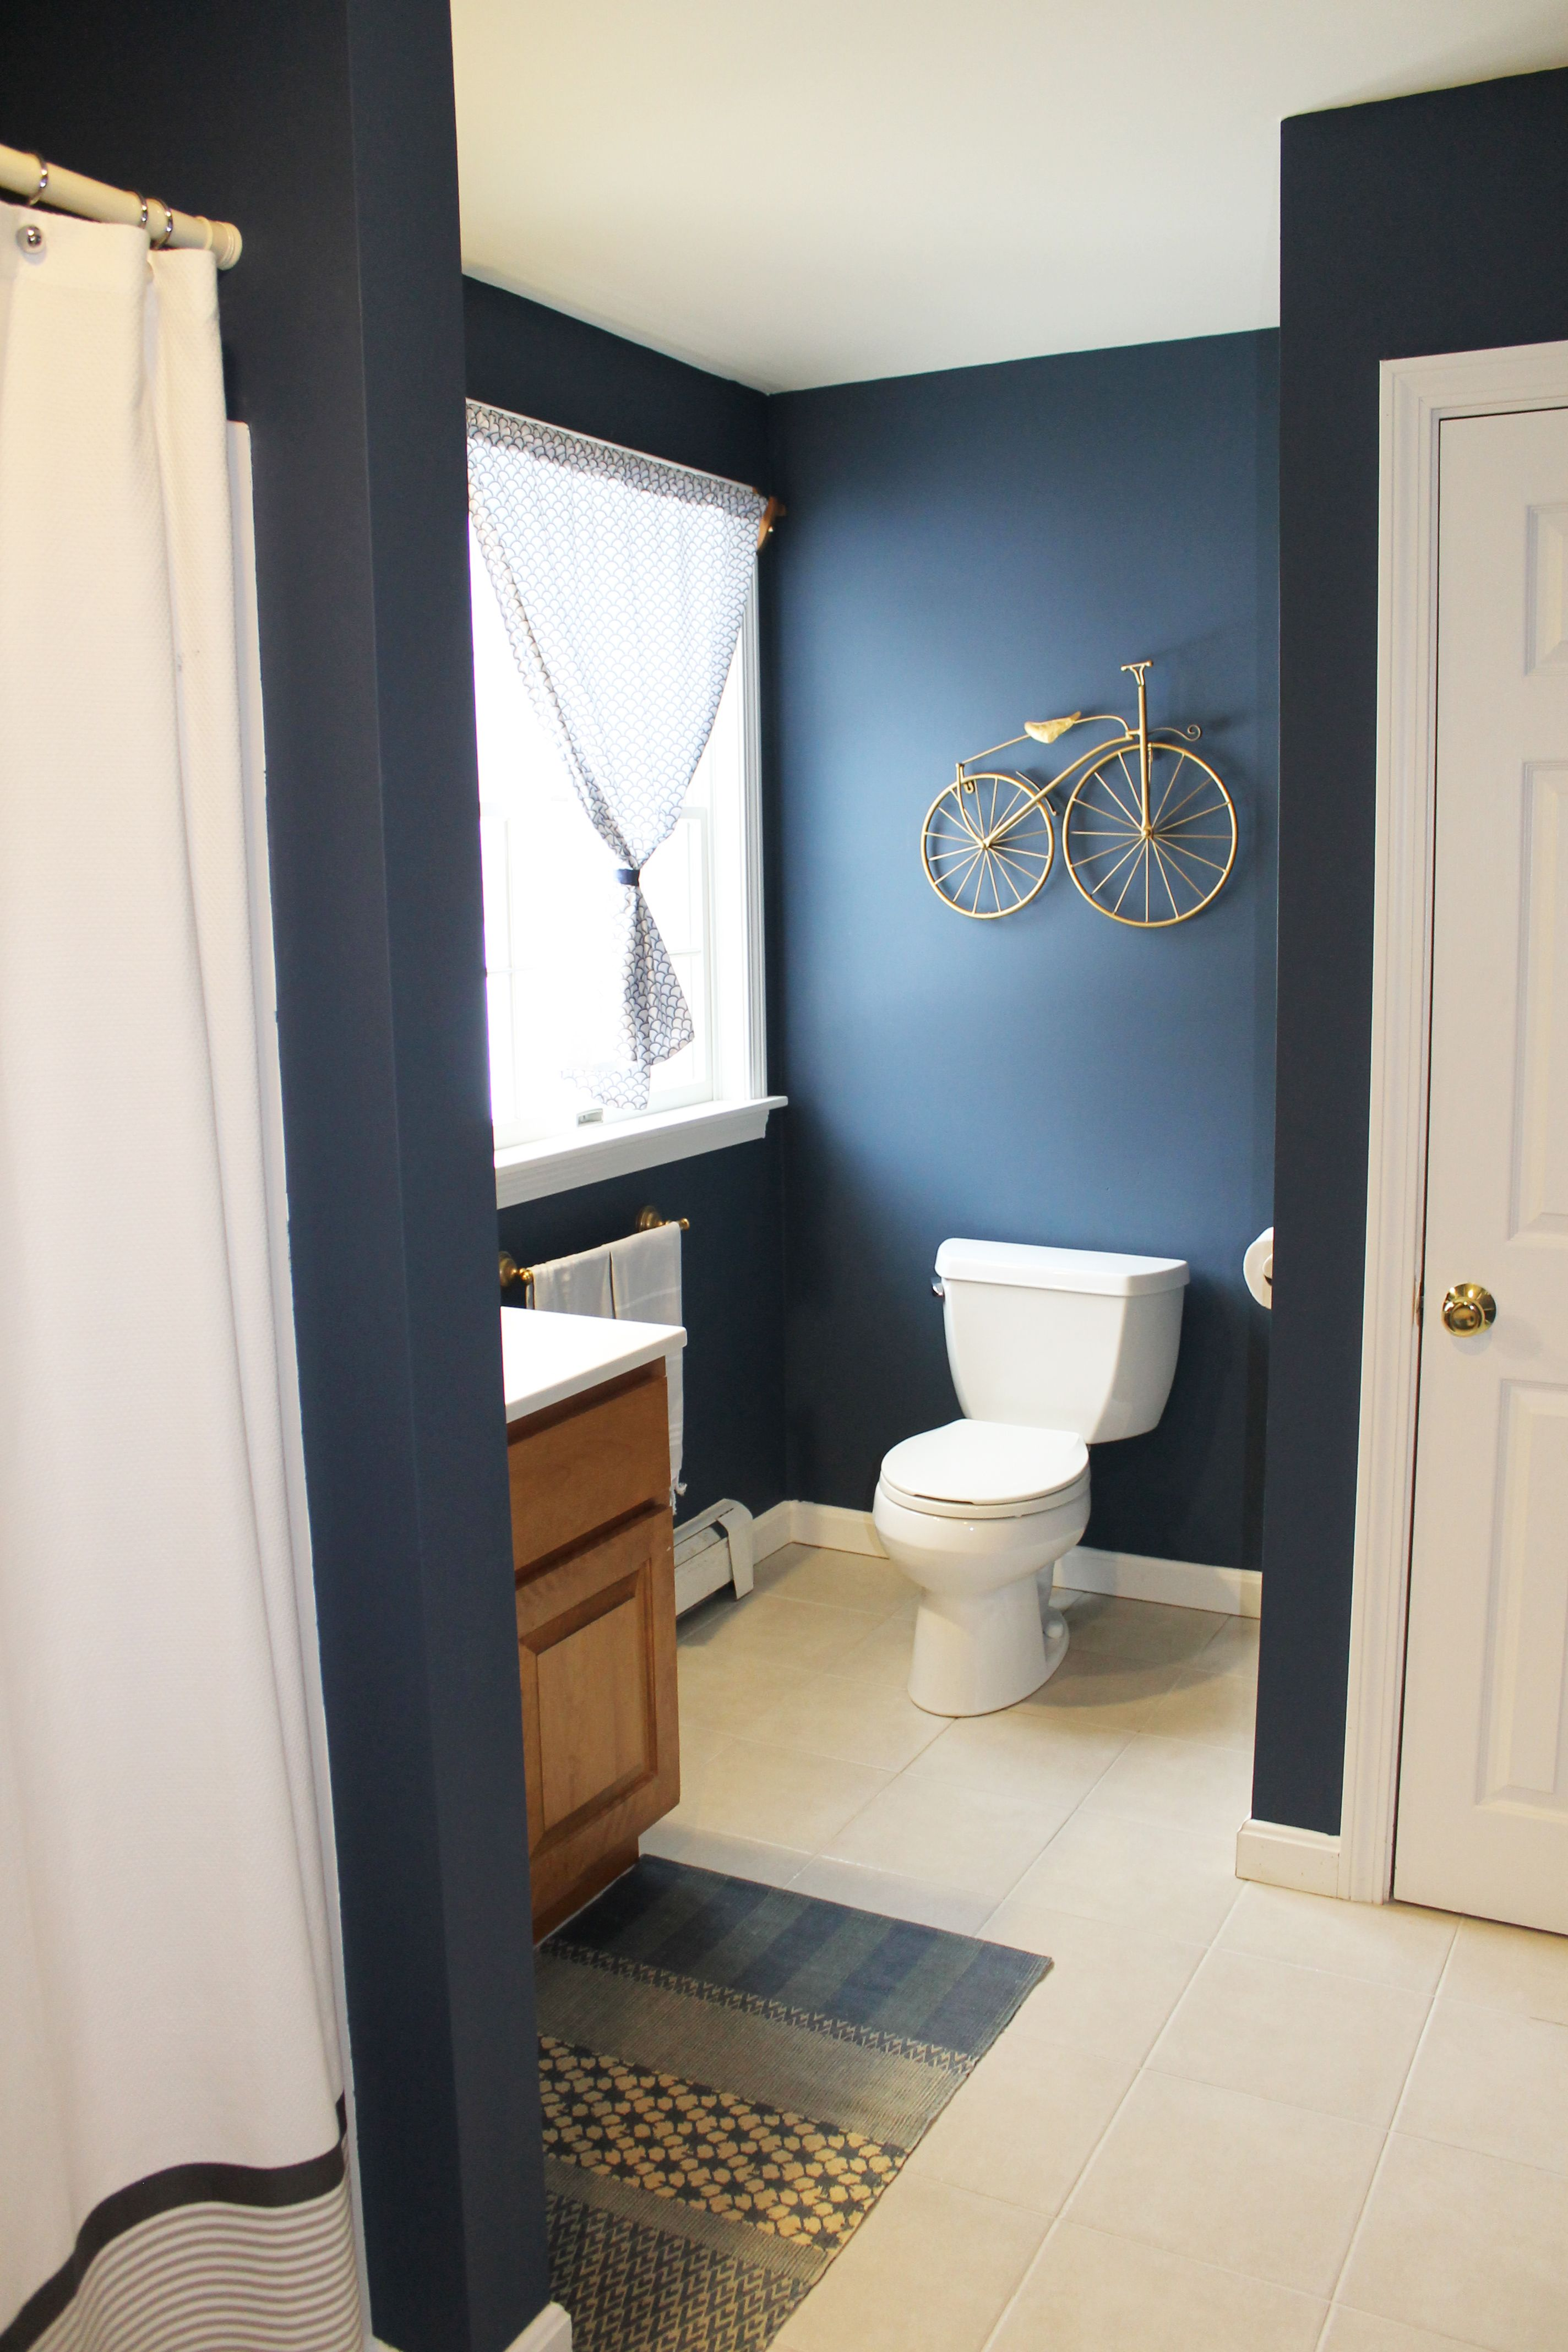 Boys Bathroom Benjamin Moore Newburyport Blue West Elm Rug And Shower Curtain Lauren Lowe Design